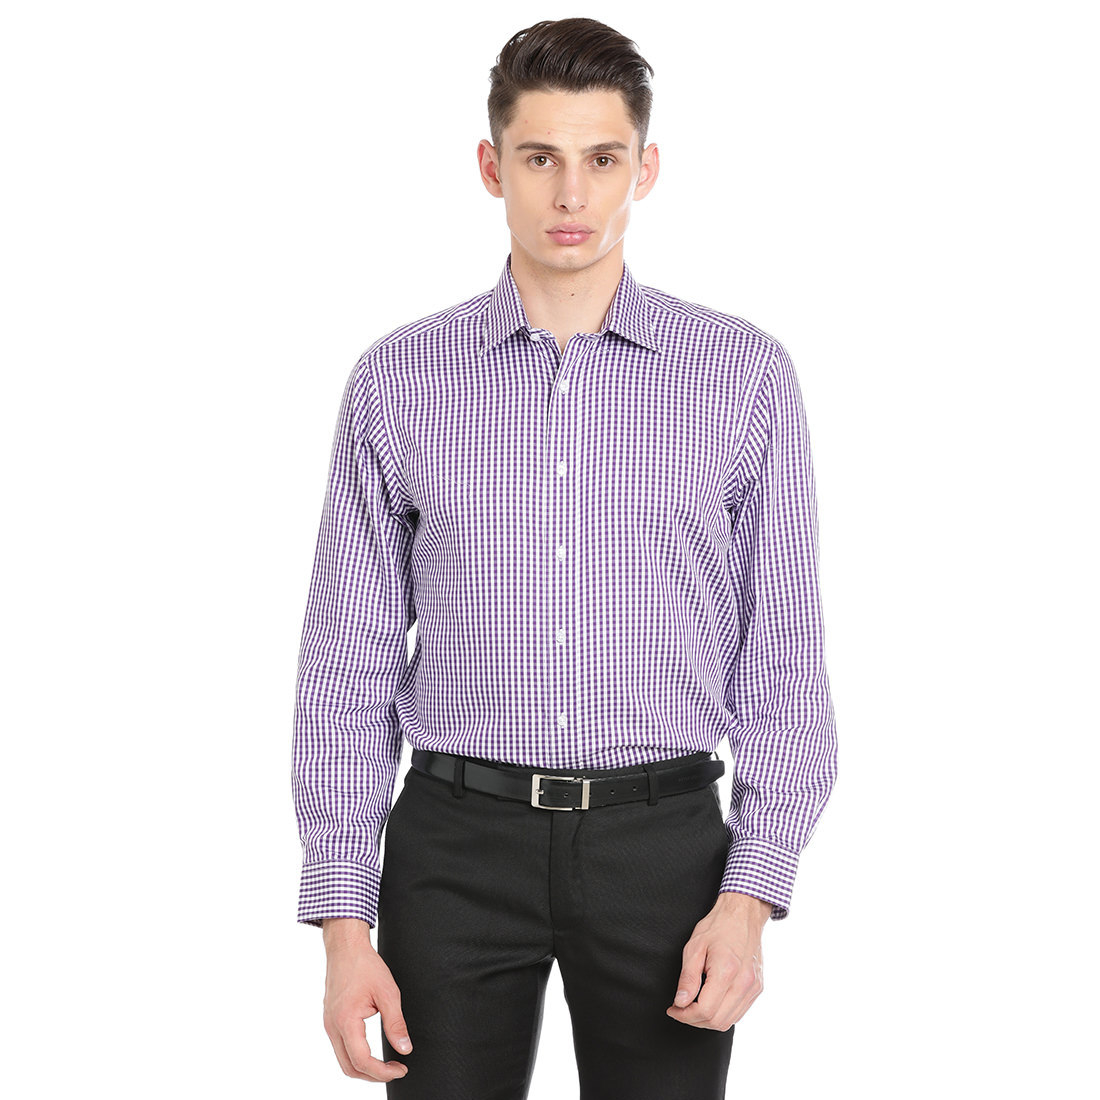 Paradigm Purple Color Formal Pure Cotton Non-Iron Shirt